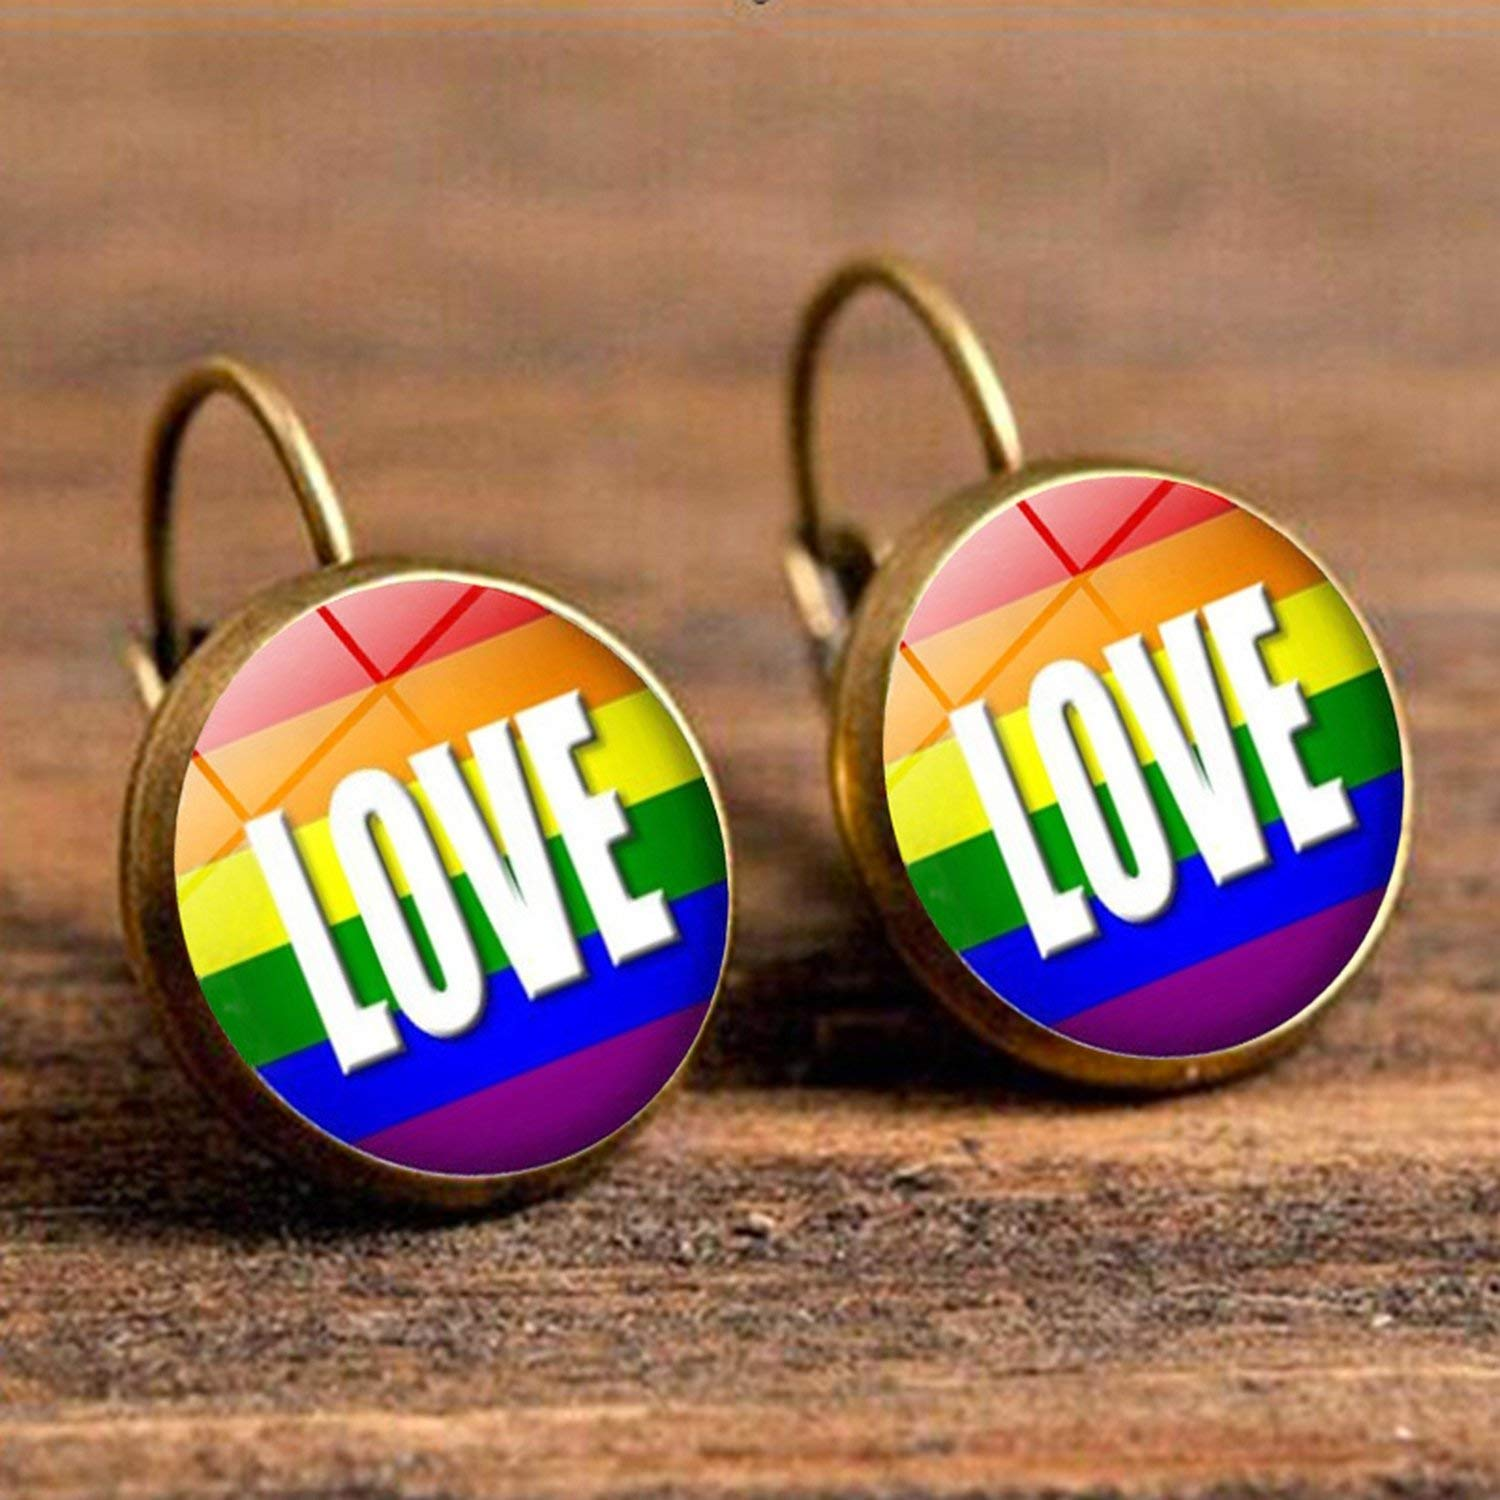 2019 New Arrival Lesbian Gay Pride Earrings Colorful Rainbow Round Glass Dome Stud Earrings For Women Lgbt Jewelry Accessories,22,Bronze Color